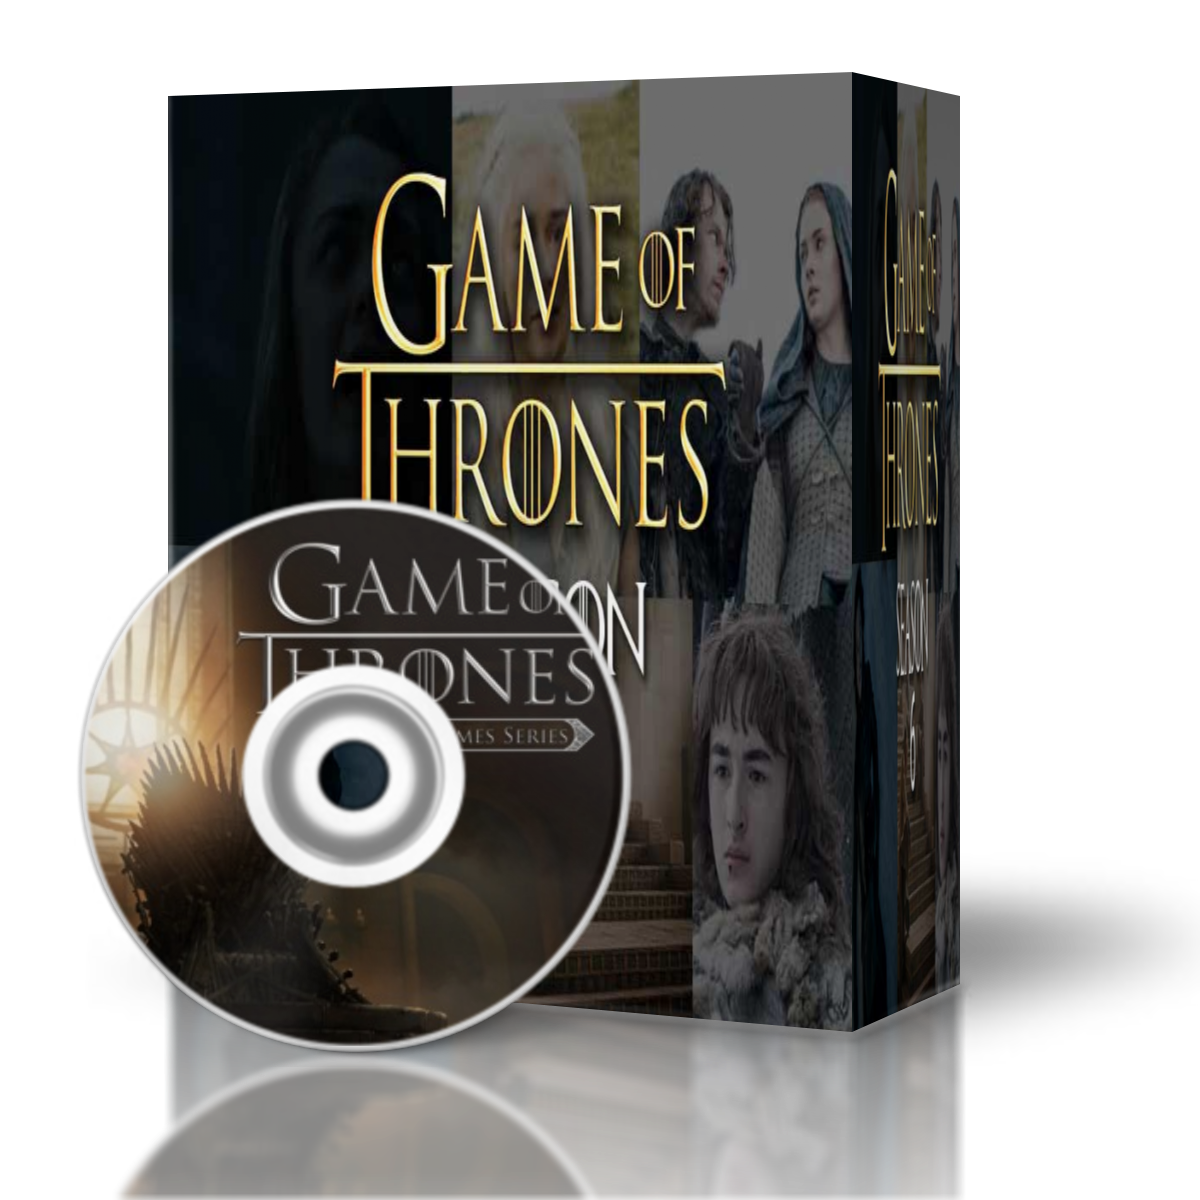 Game of Thrones Temporada 6 (Capitulo 6) 2016 Actualizacion